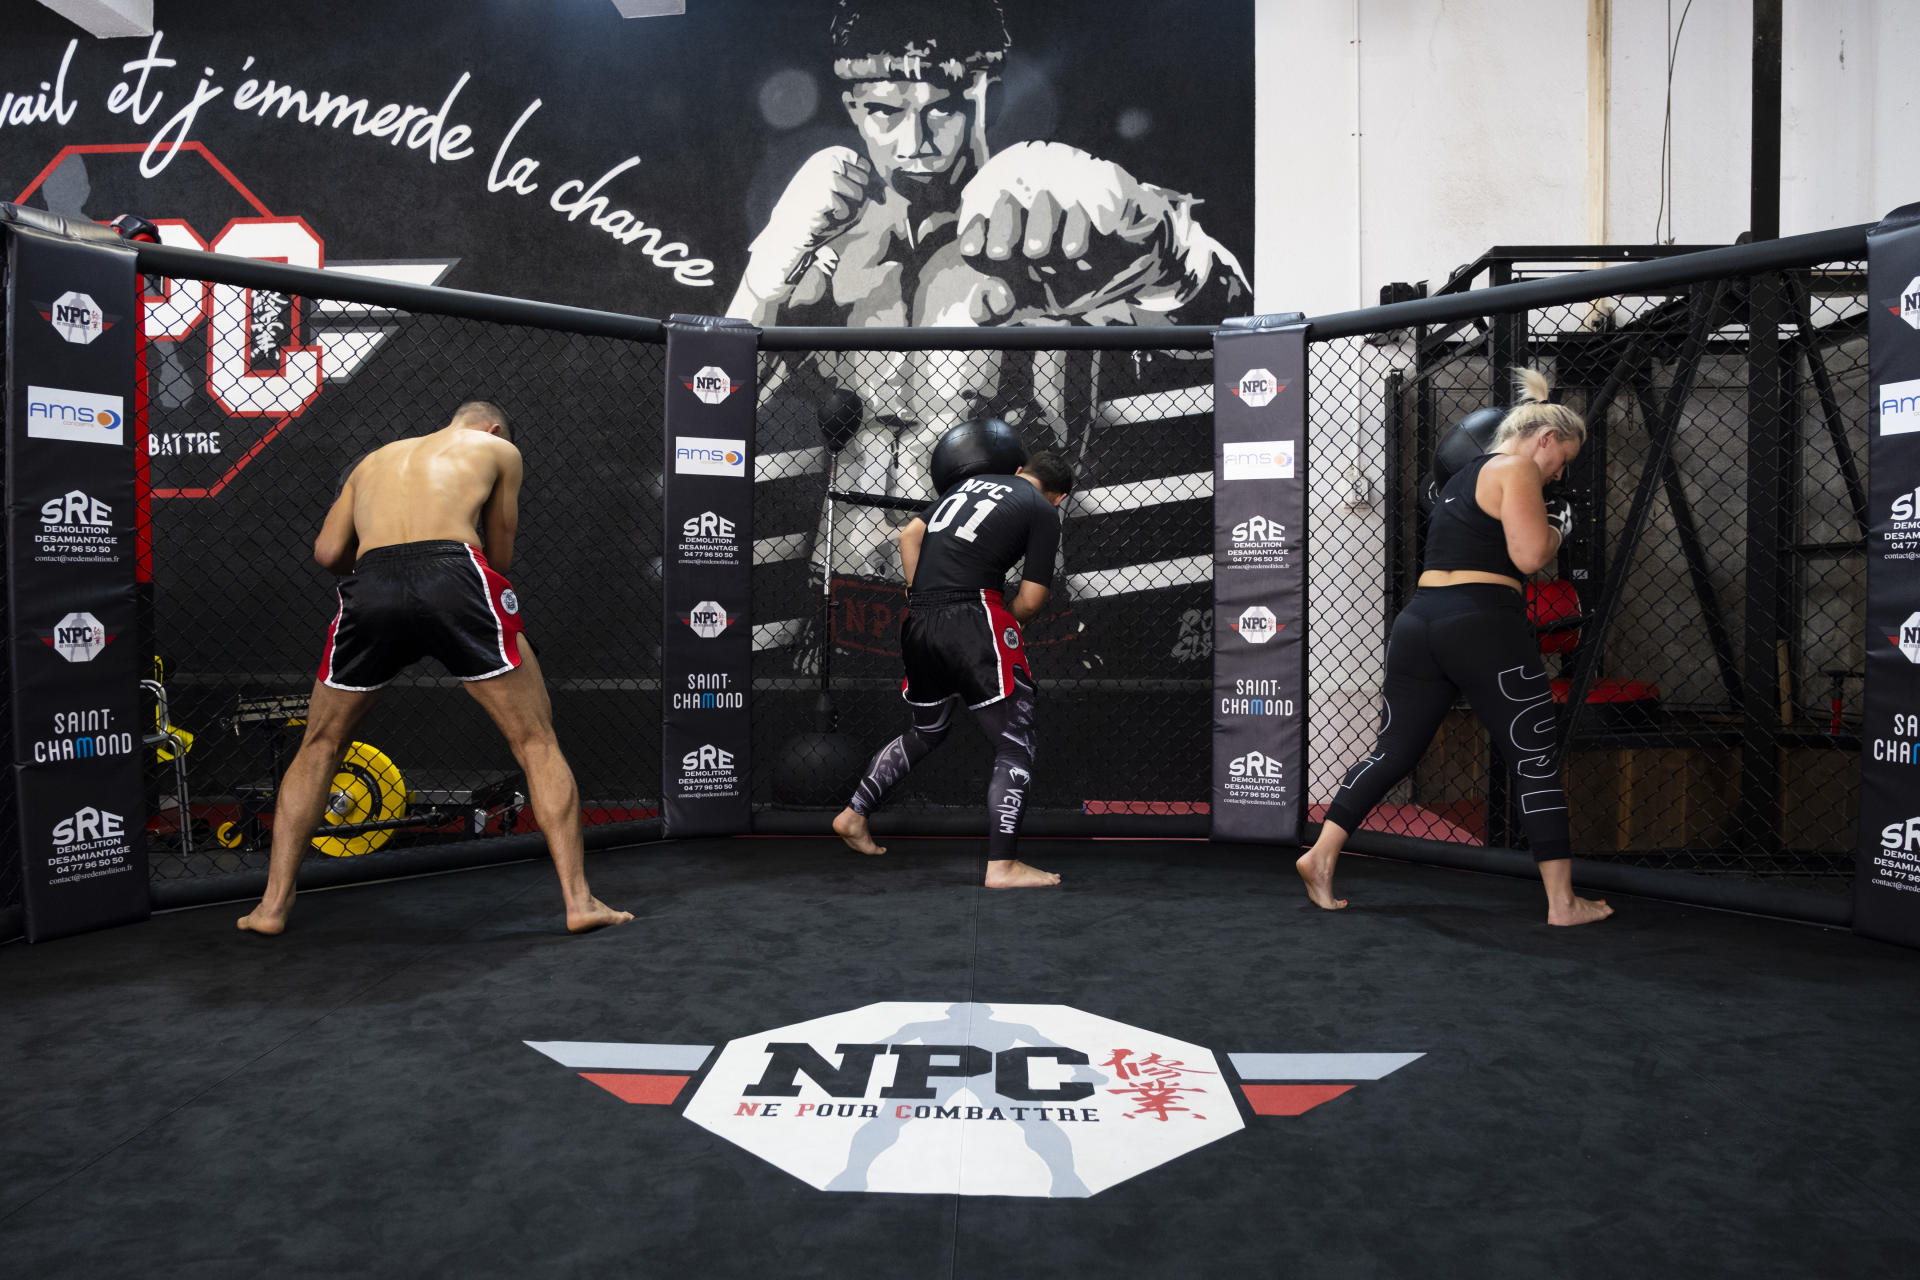 MMA comes out of its cage in Saint-Chamond